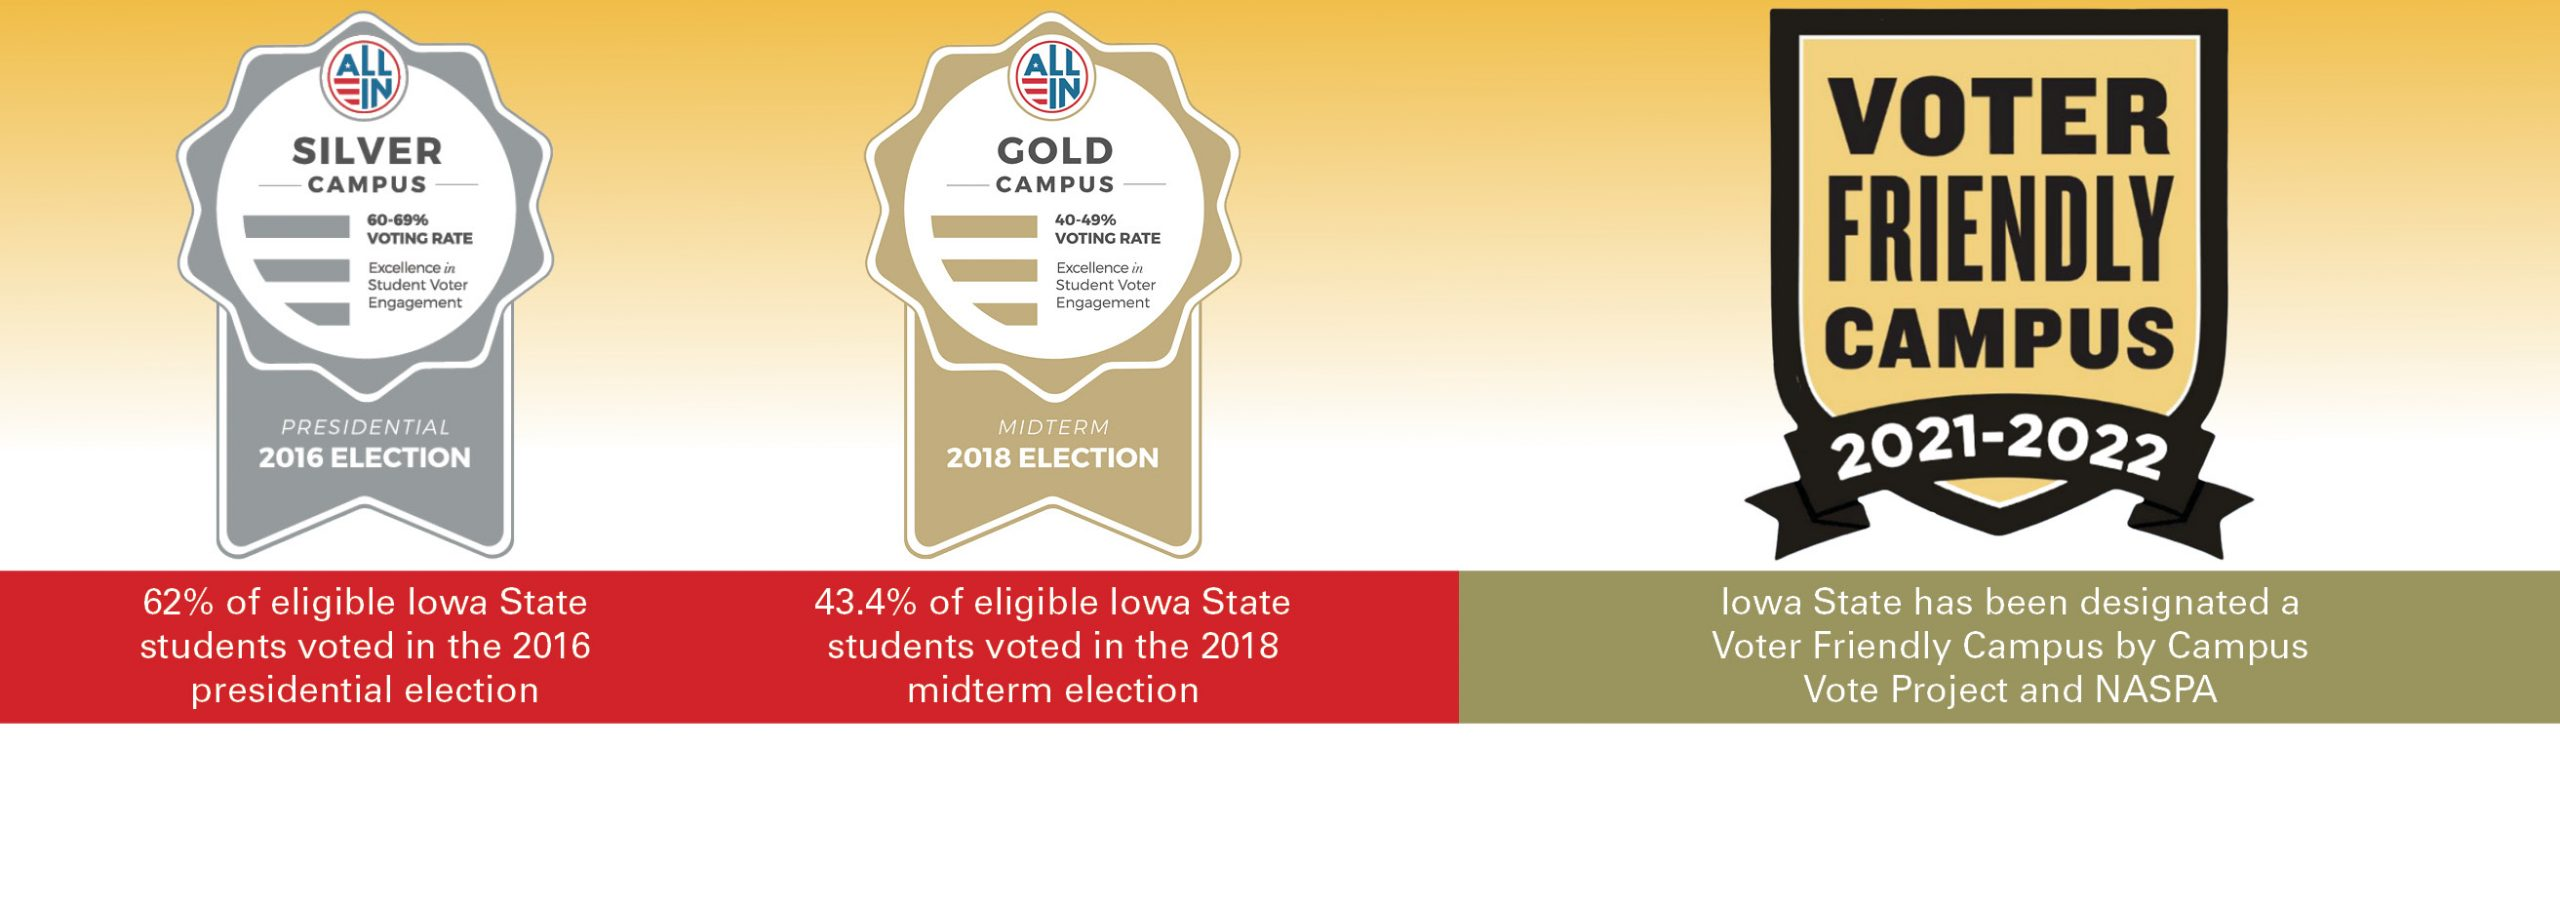 Voter engagement at Iowa State wins awards!